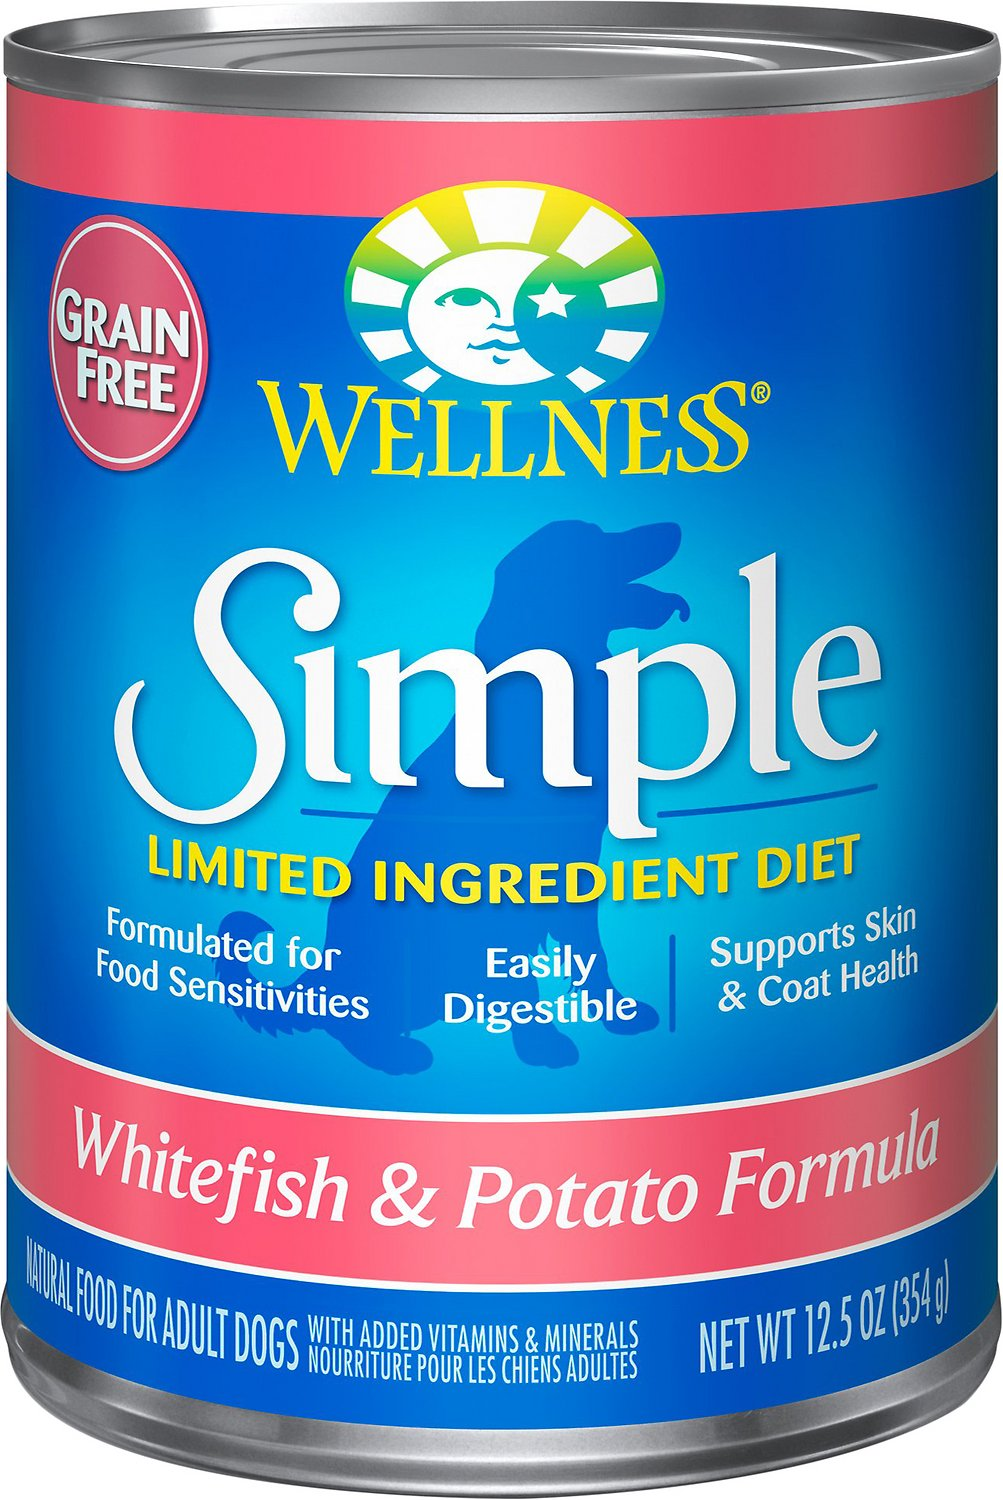 Wellness Simple Limited Ingredient Diet Grain-Free Whitefish & Potato Formula Canned Dog Food, 12.5-oz